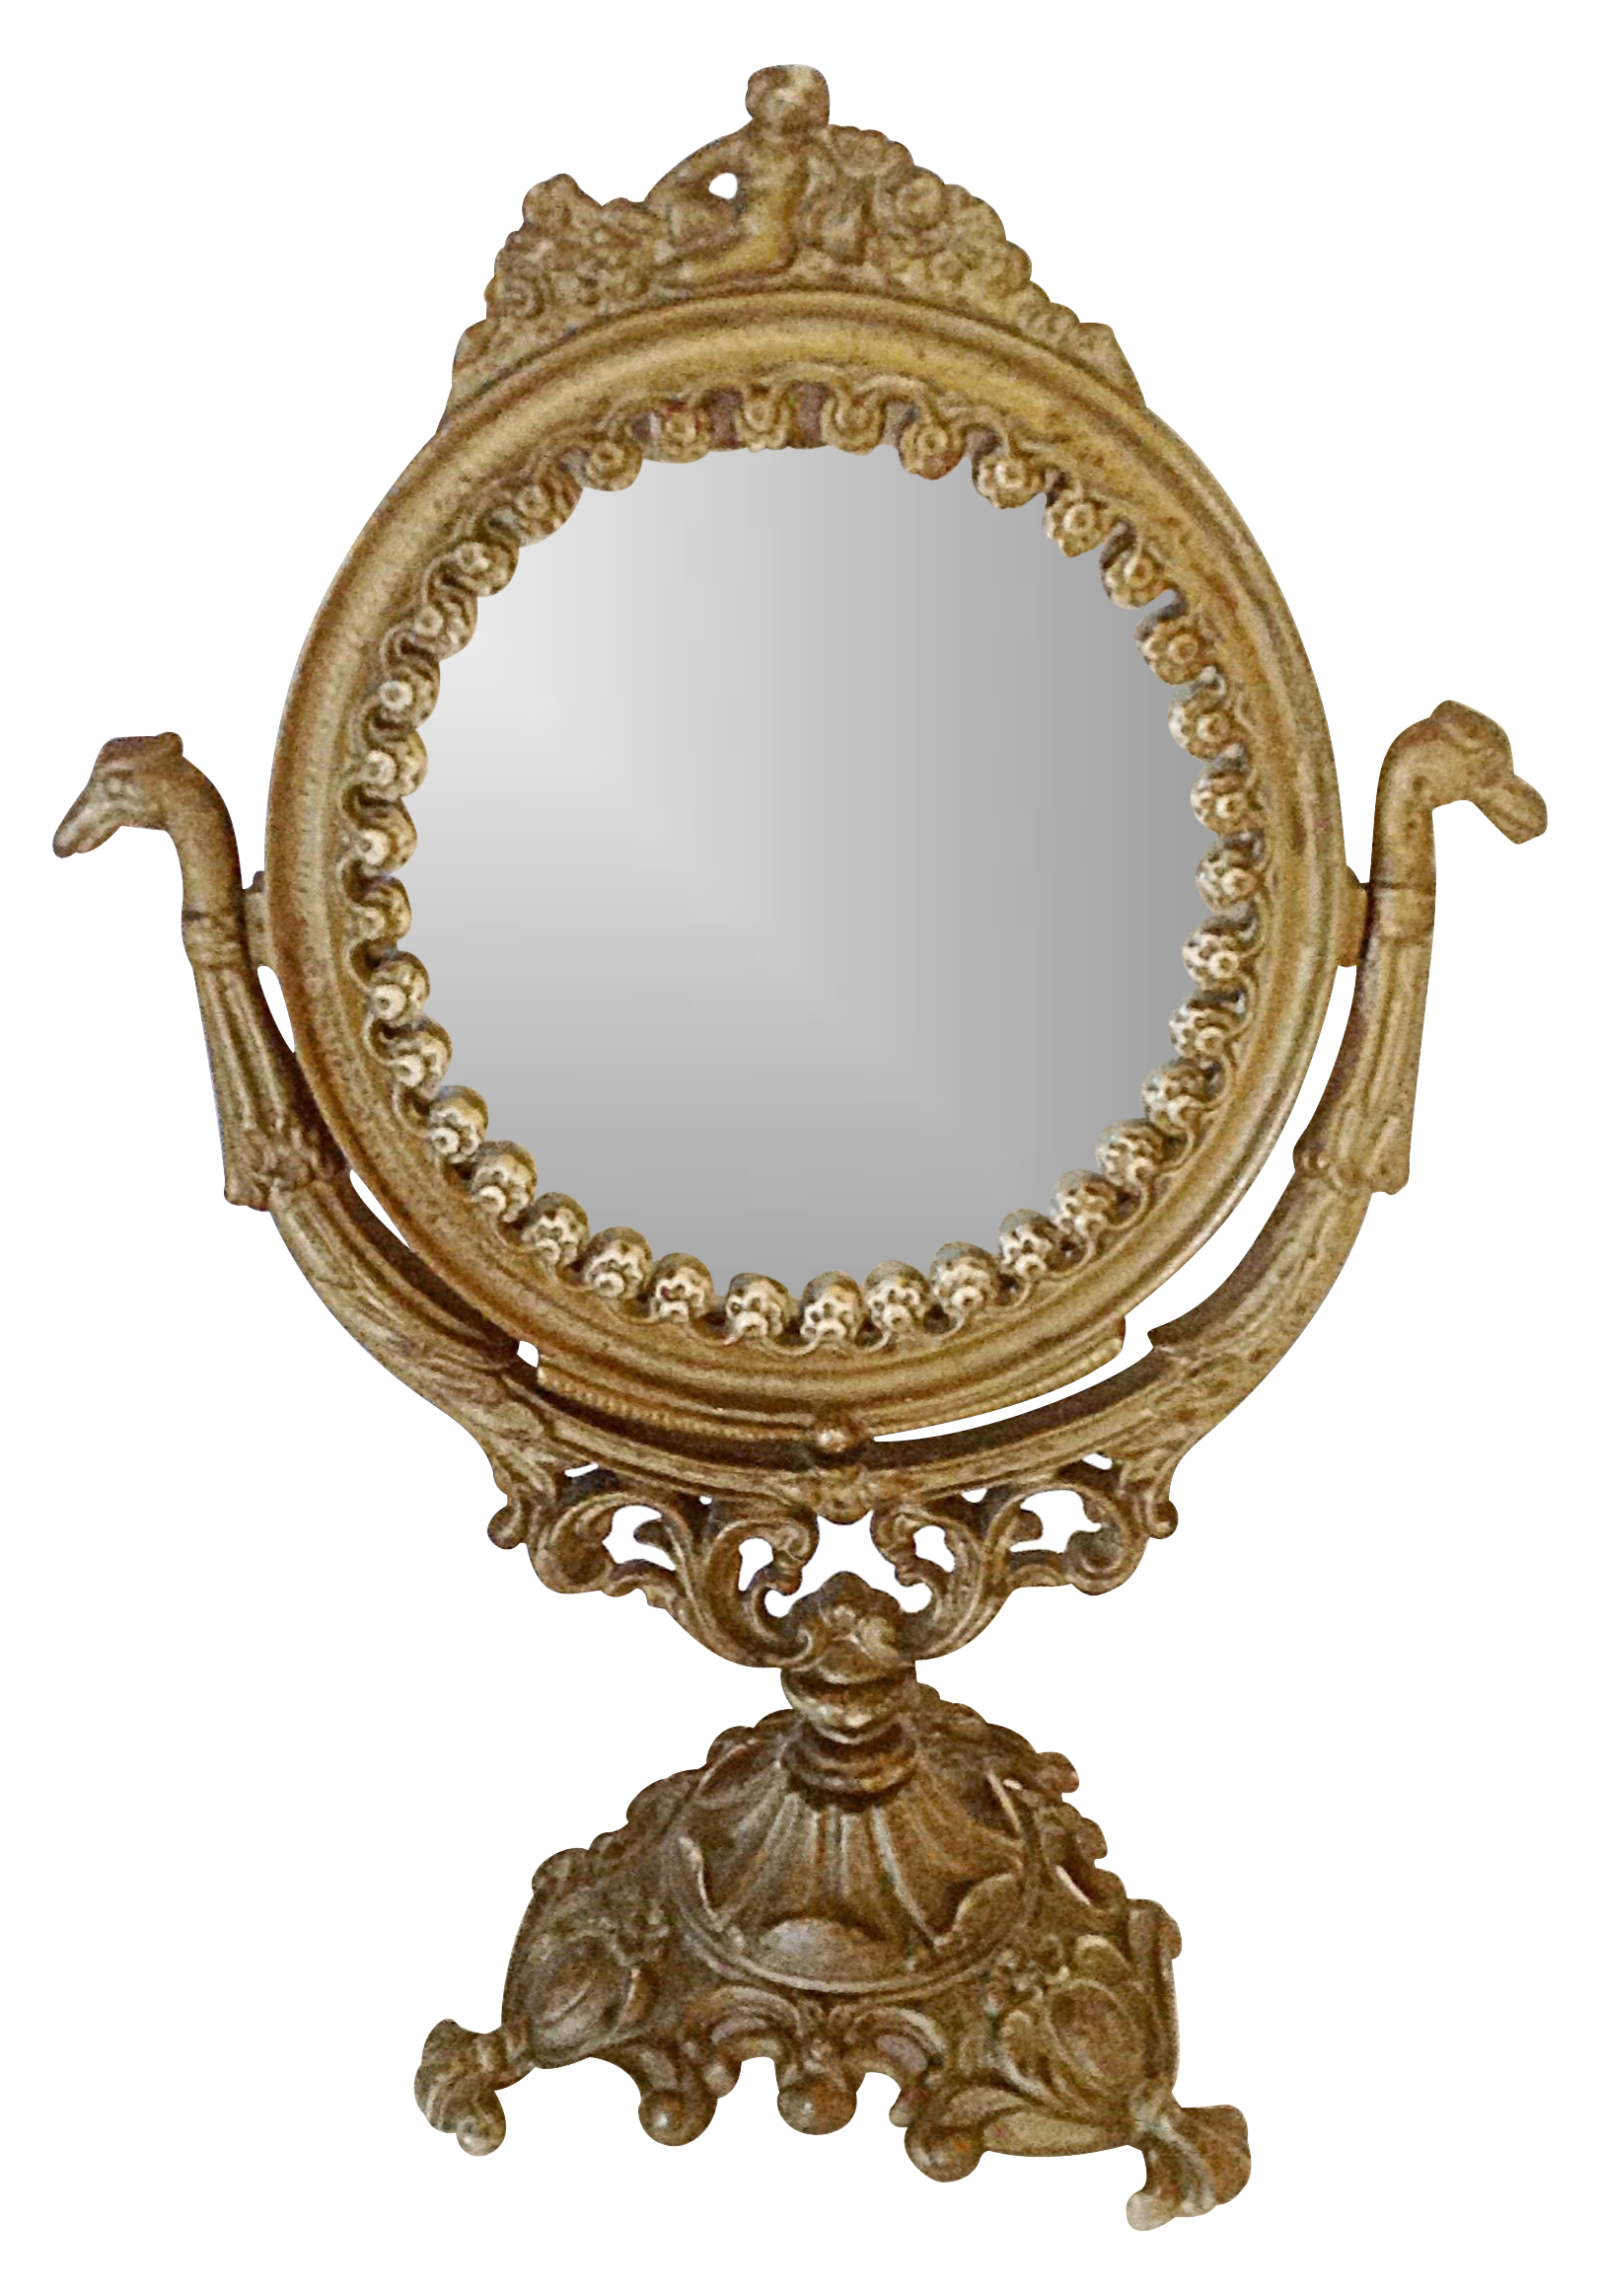 Victorian Table Swivel Mirror Chairish : victorian table swivel mirror 0641 from www.chairish.com size 1621 x 2327 png 2048kB